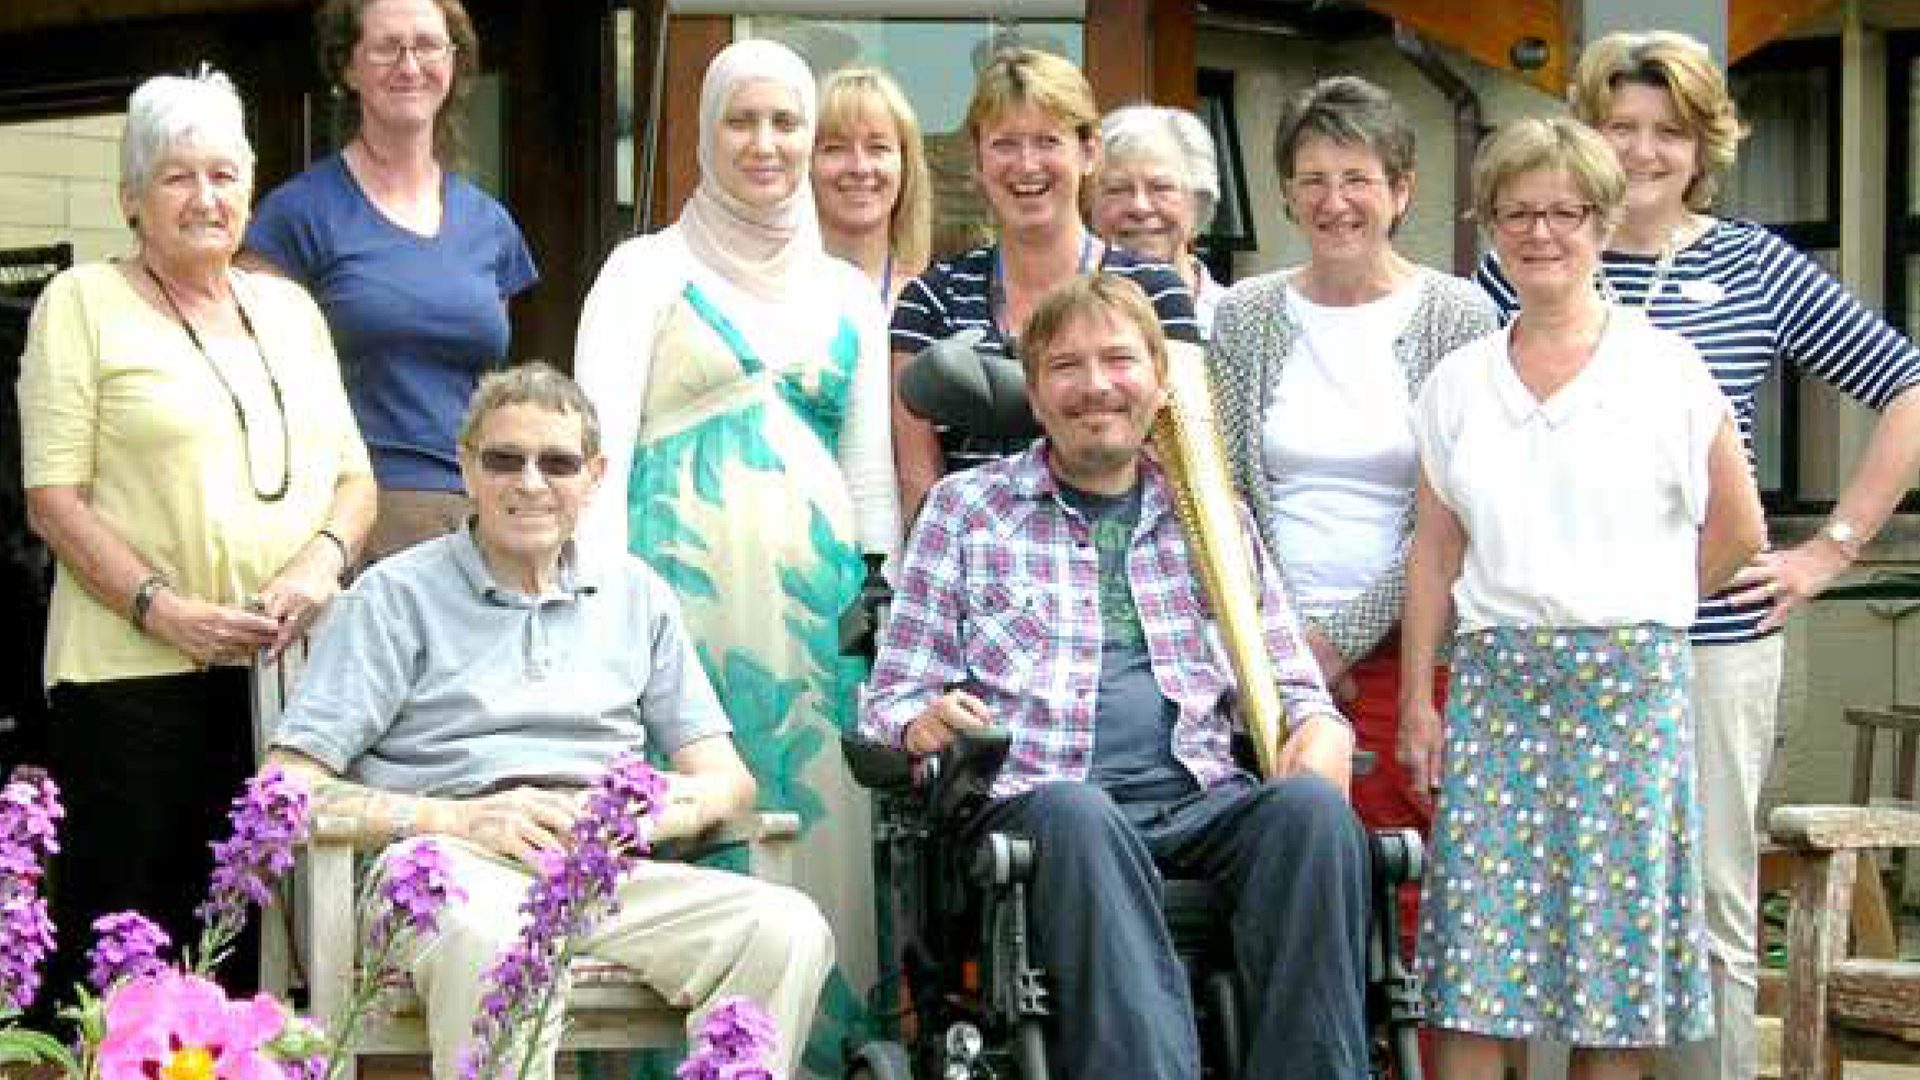 Group of patients and gent holding an Olympic Torch